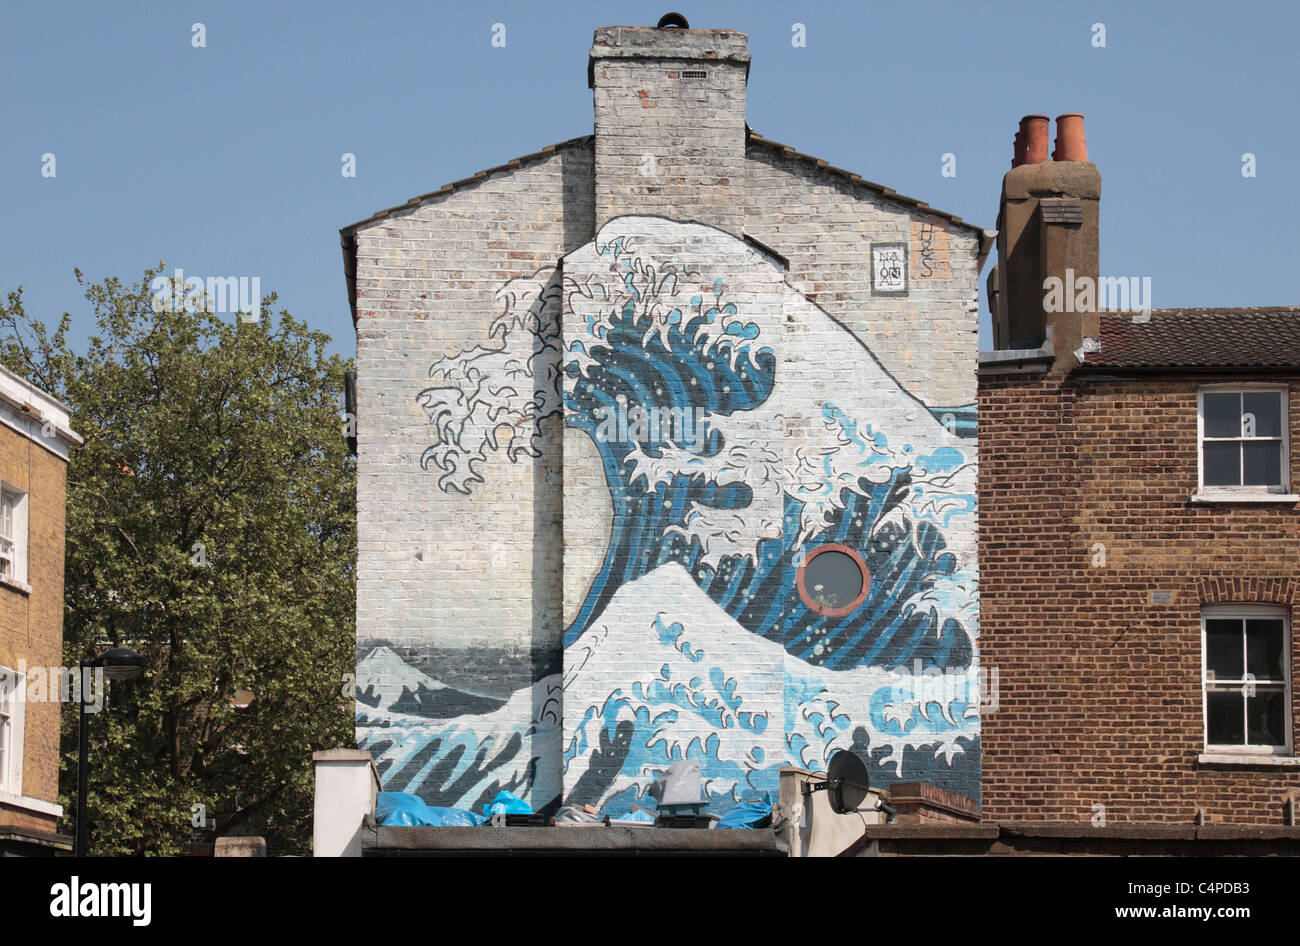 A mural on the side of a house in Camberwell, south London in the style of The GReat Wave, by Katsushika Hokusai. - Stock Image